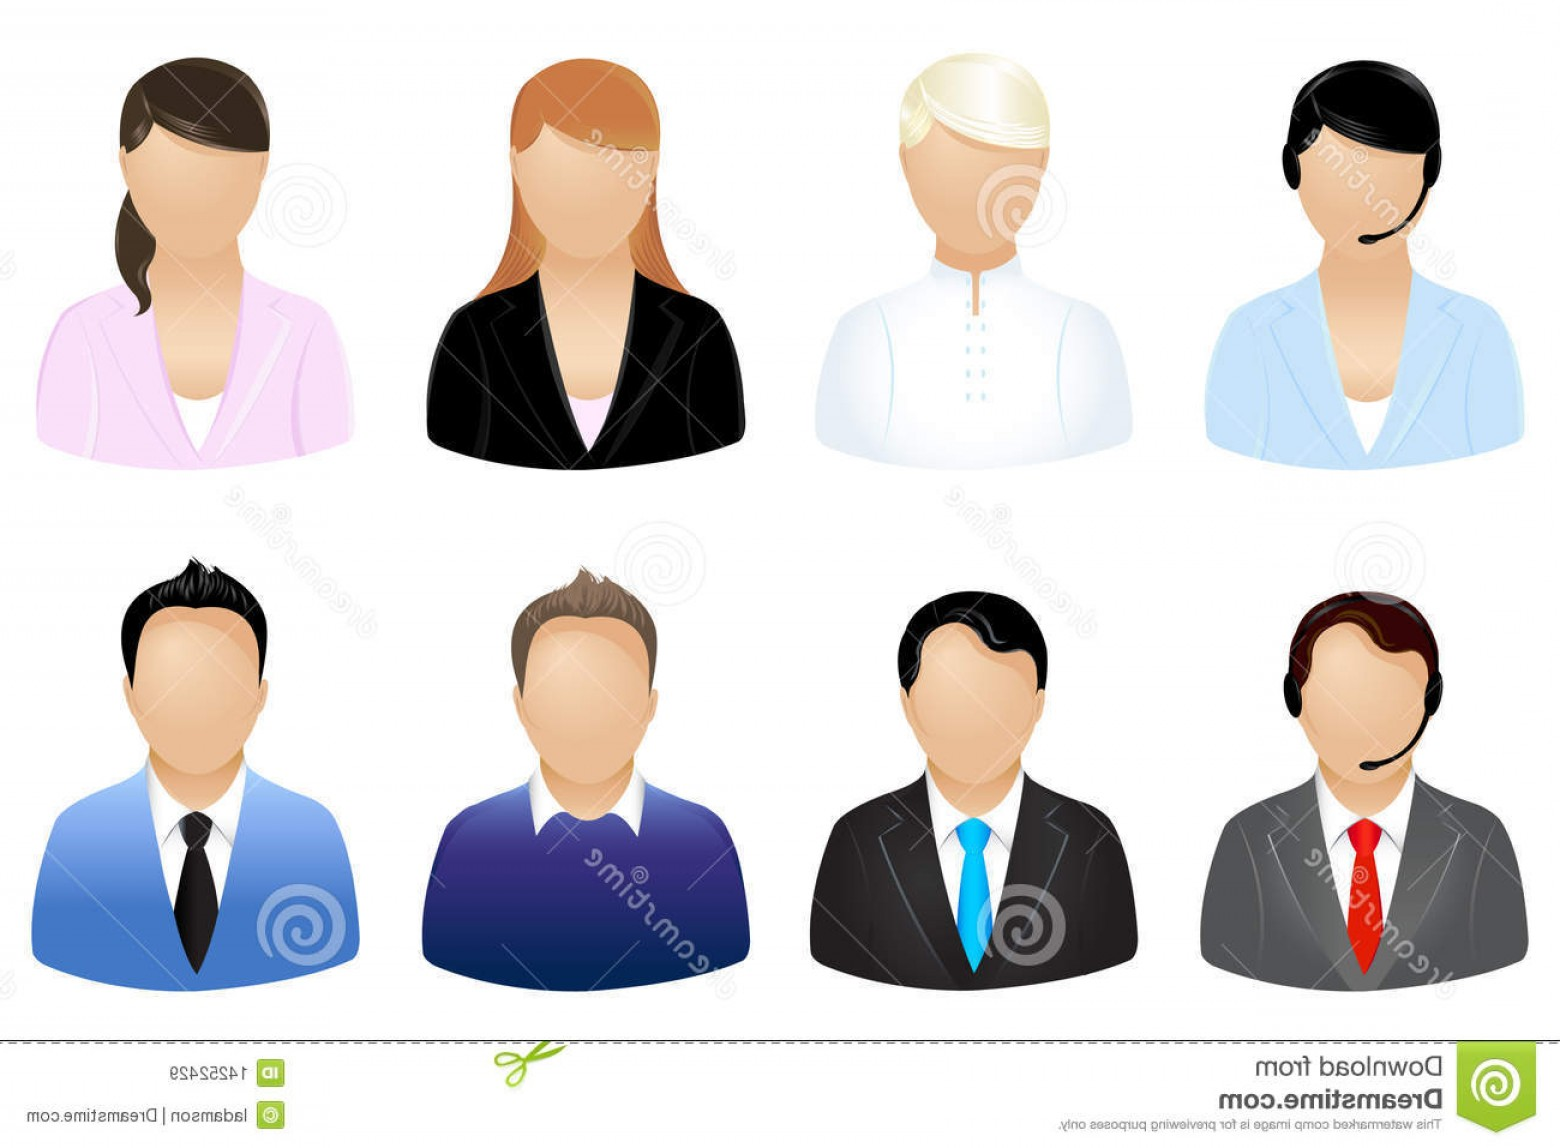 Free Vector Business People Icon: Royalty Free Stock Images Business People Icons Vector Image